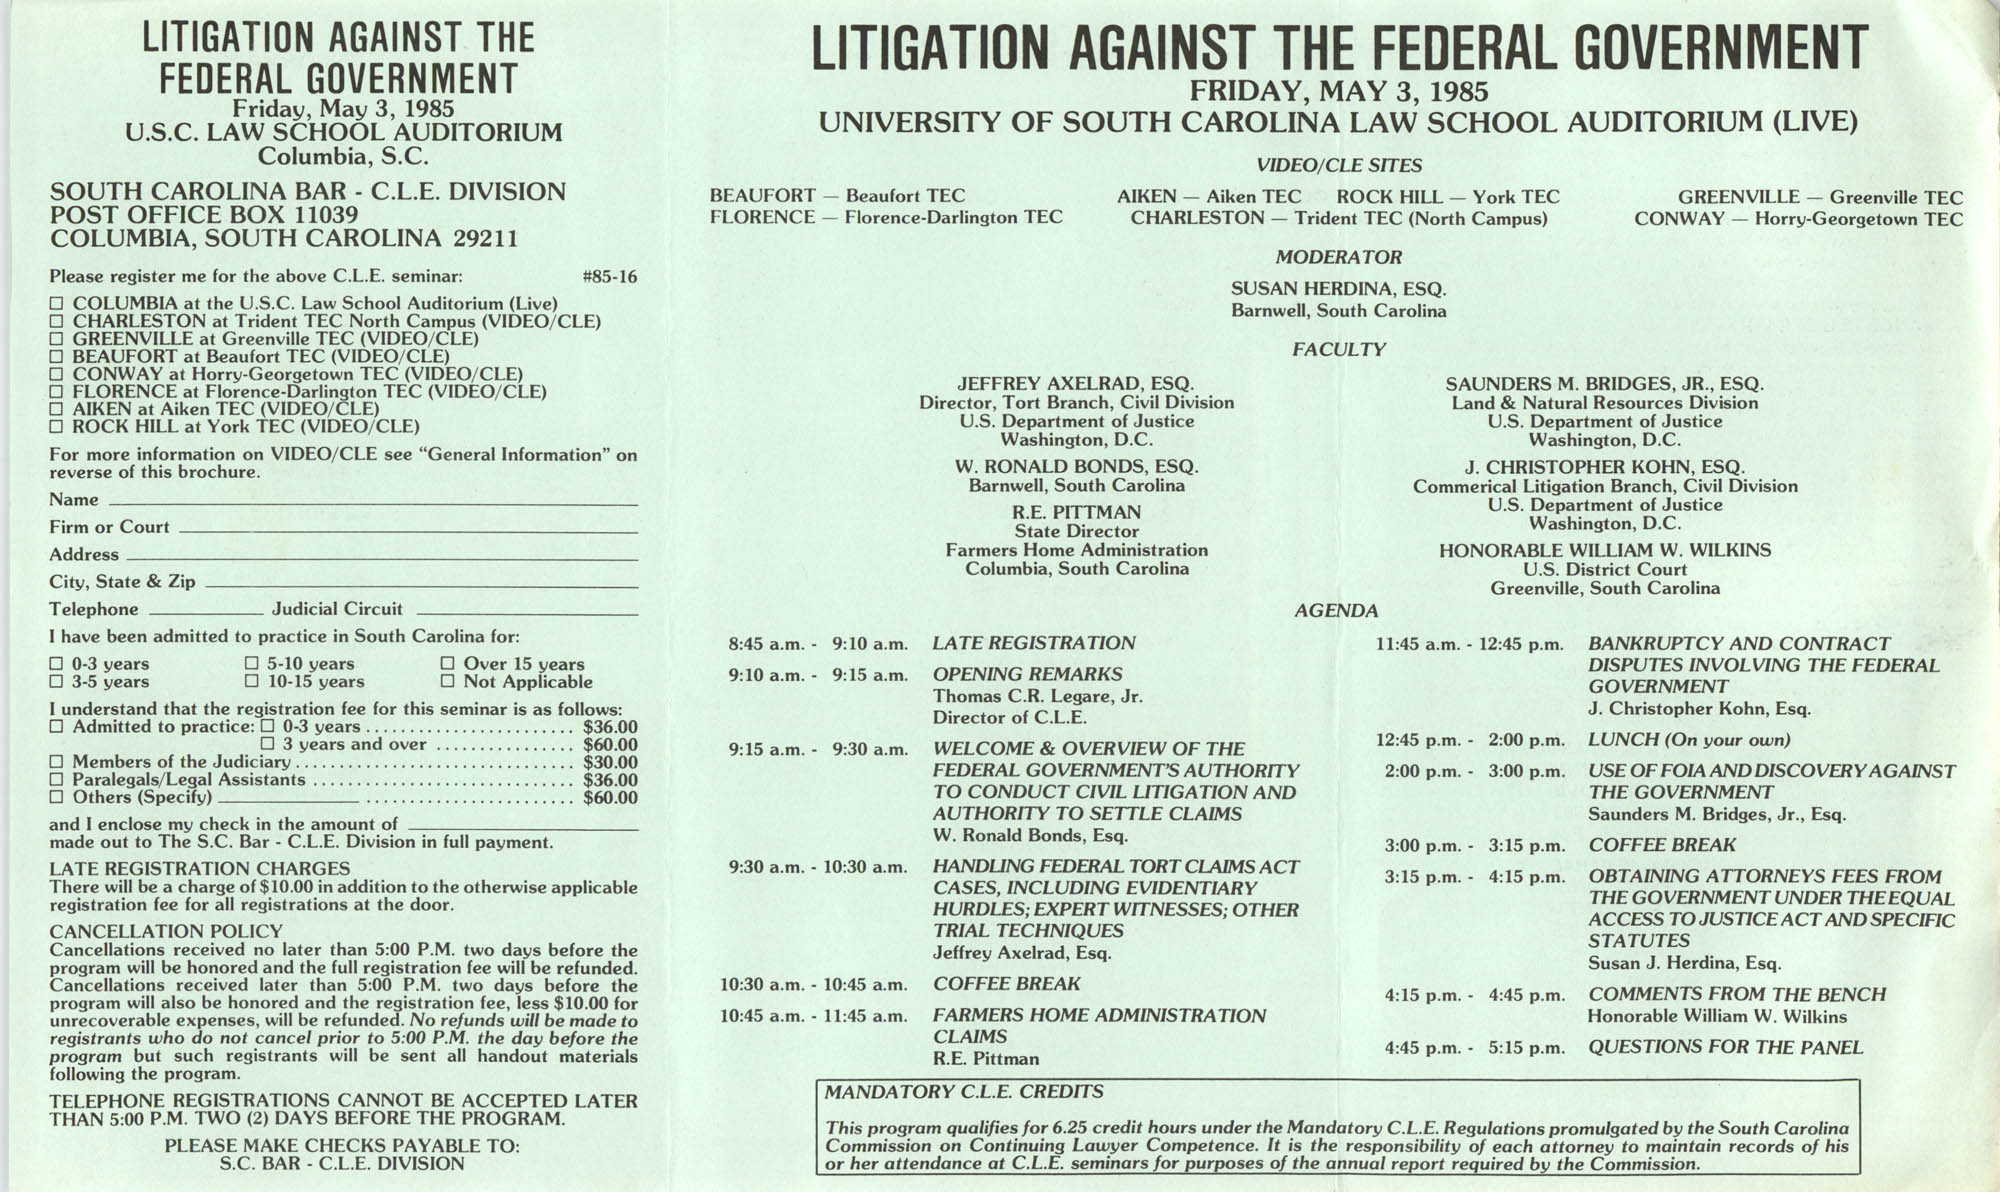 Litigation Against the Federal Government, Video/CLE Seminar Pamphlet, May 3, 1985